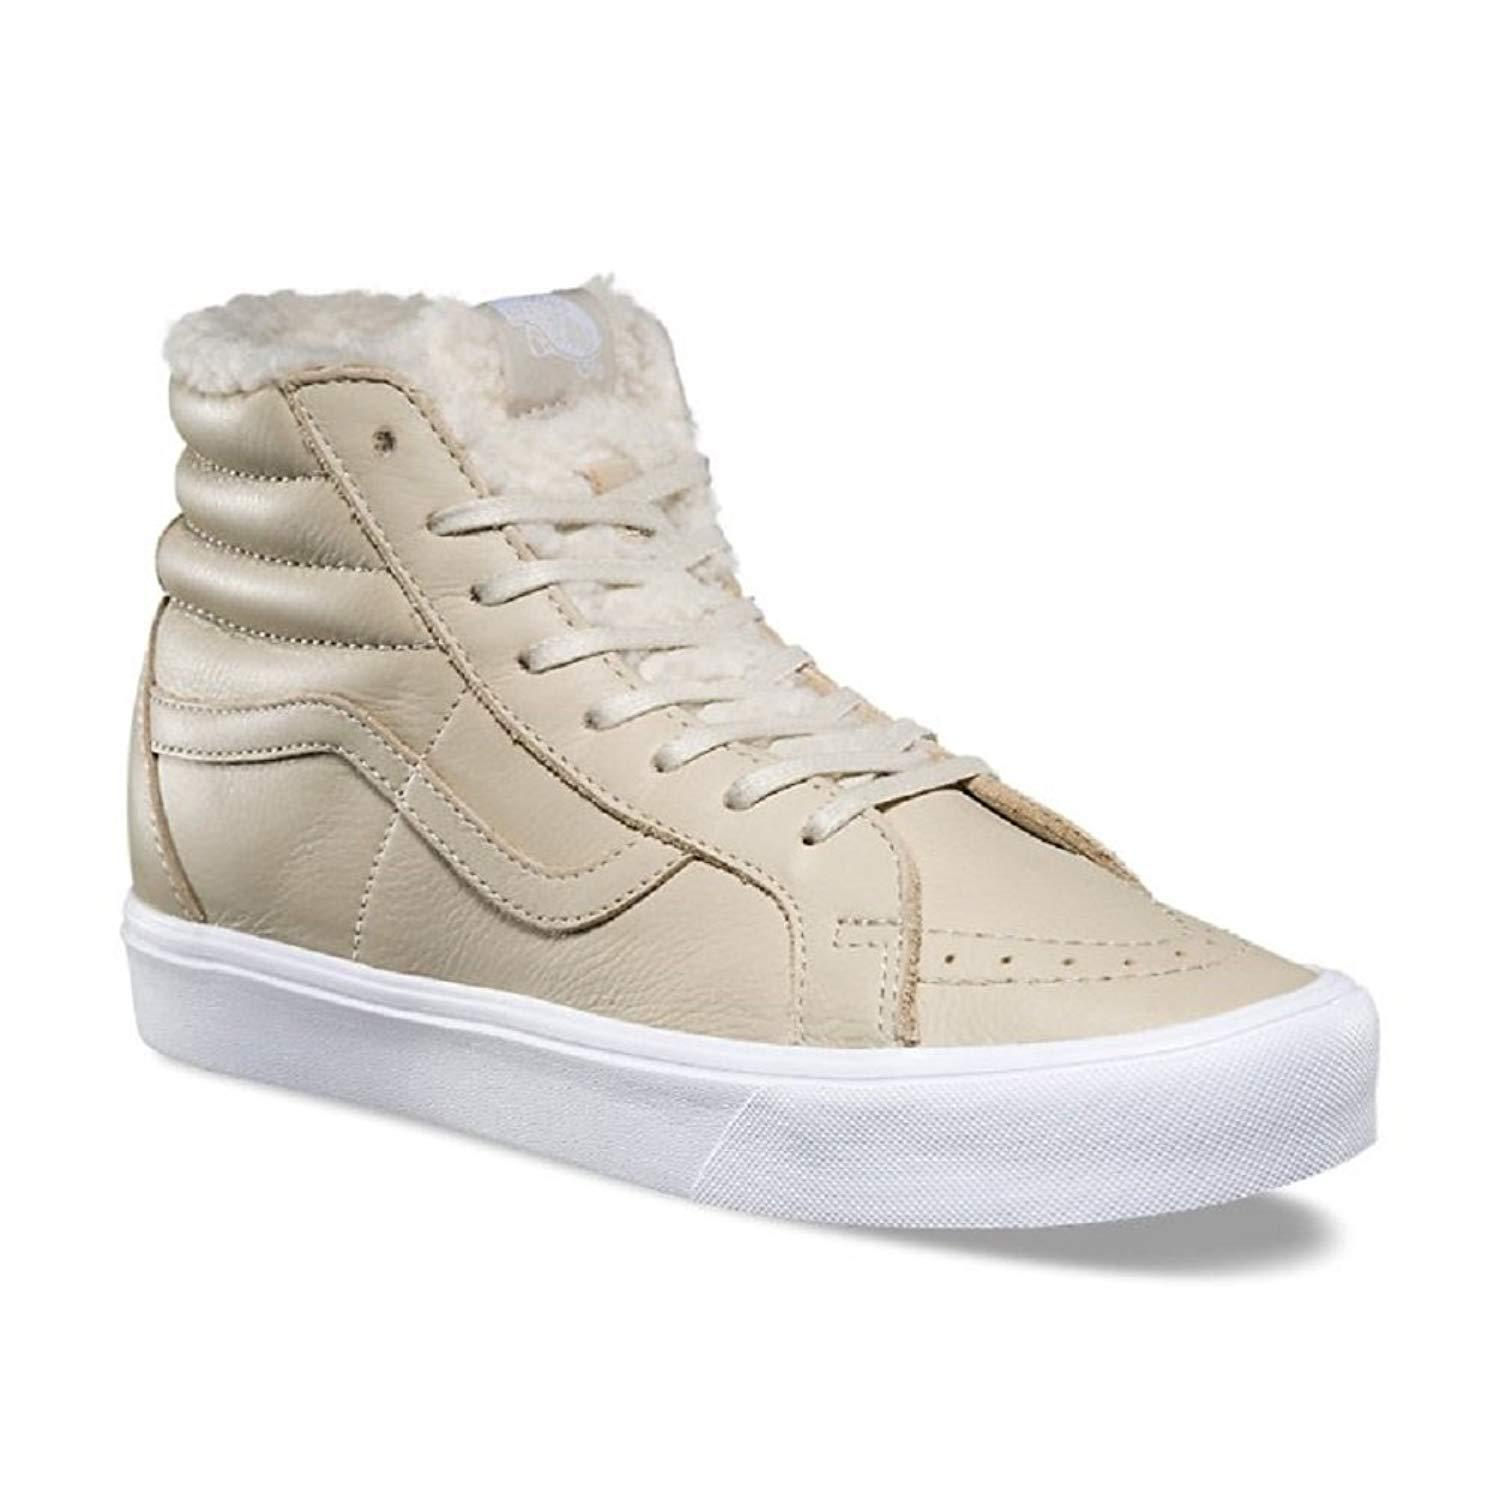 Primary image for Vans Sk8 Hi Reissue Lite (Sherpa) Cement True White Faux Fur Warm Men's 8